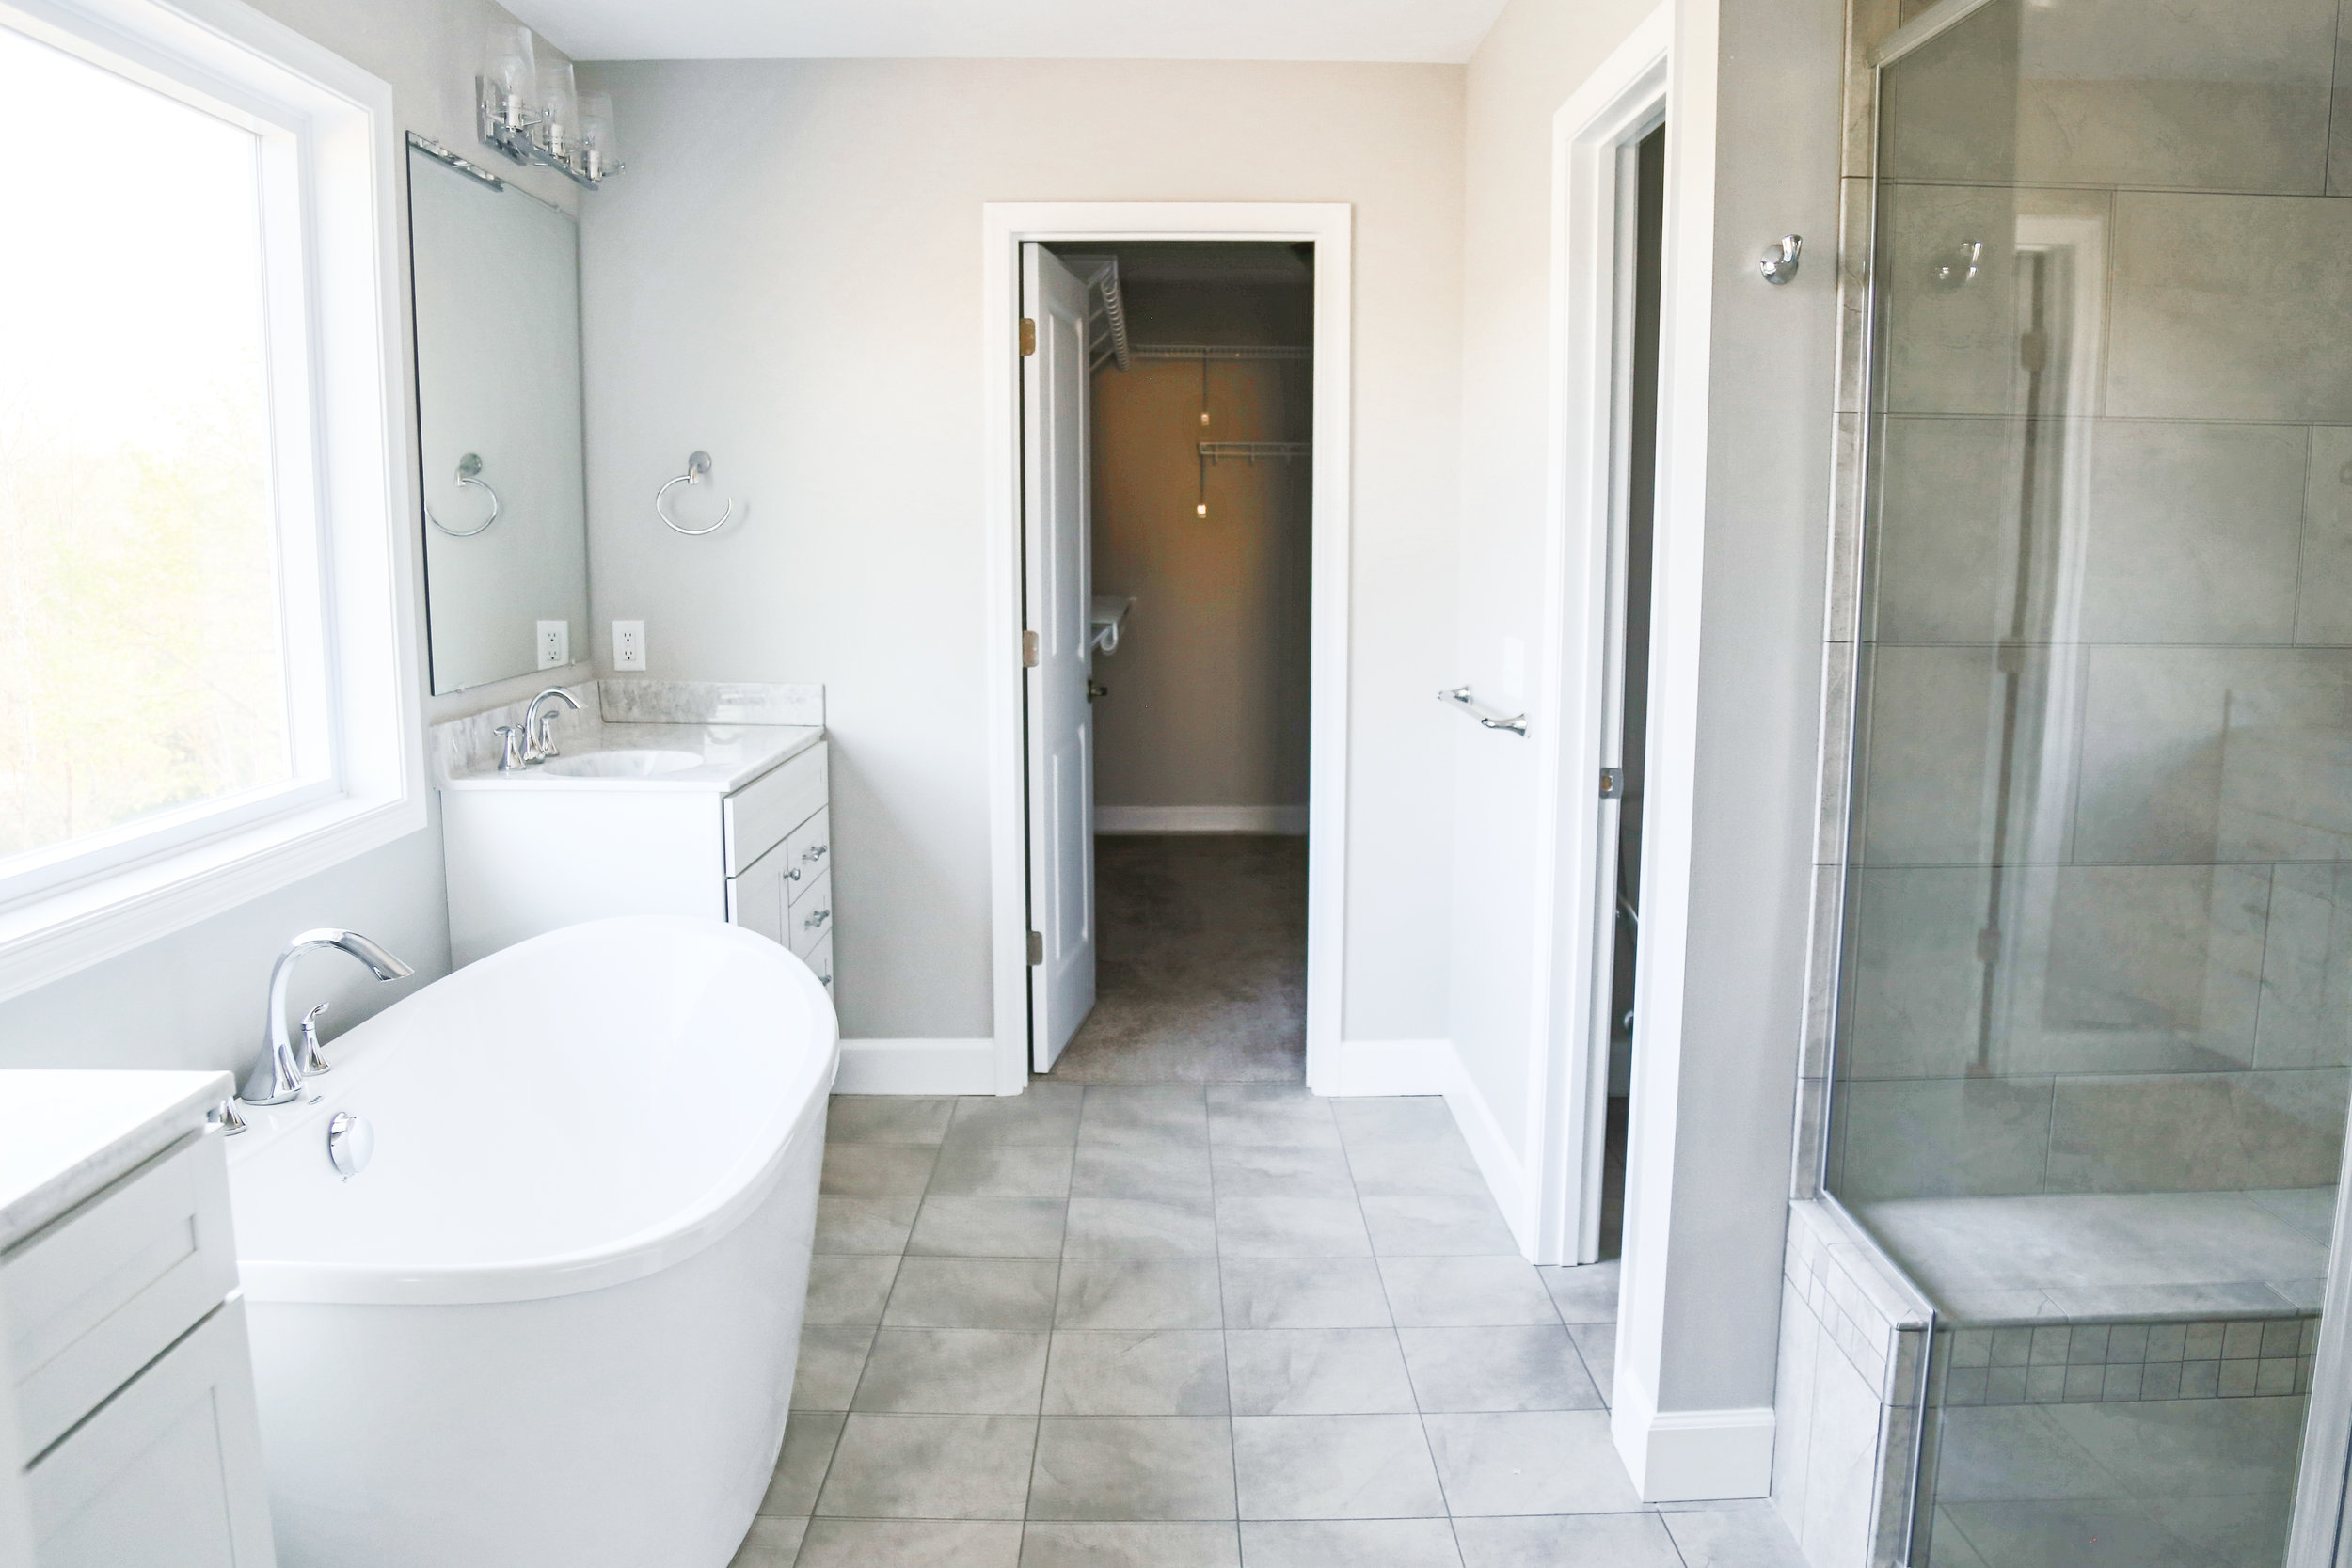 Luxurious Bathroom Design with a slipper tub, split vanity and tile walk-in shower